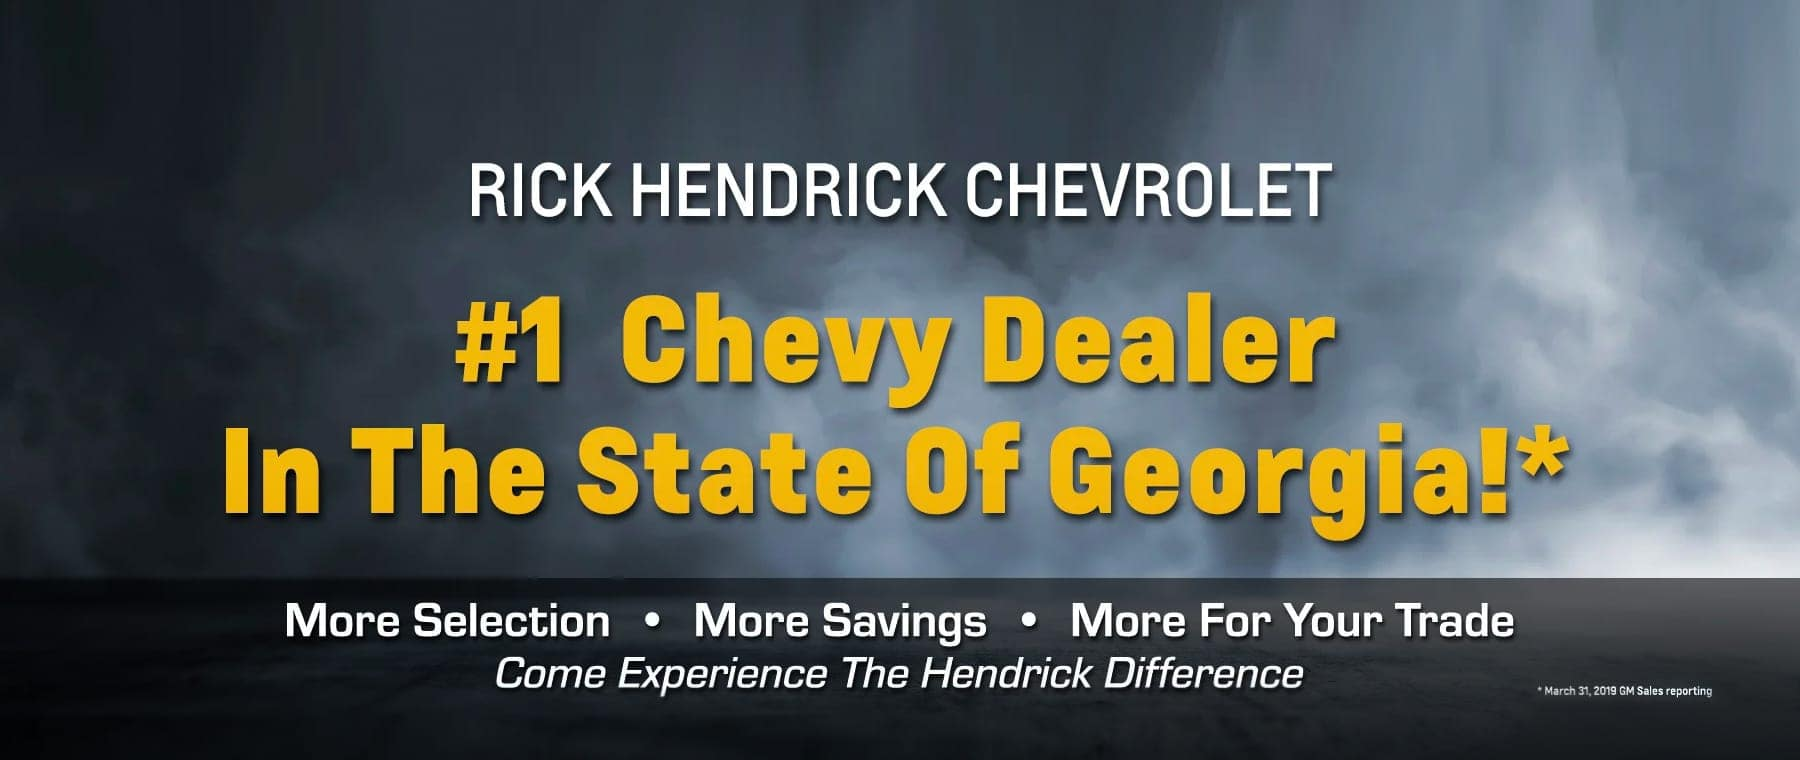 #1 Chevy Dealer in State of Georgia!